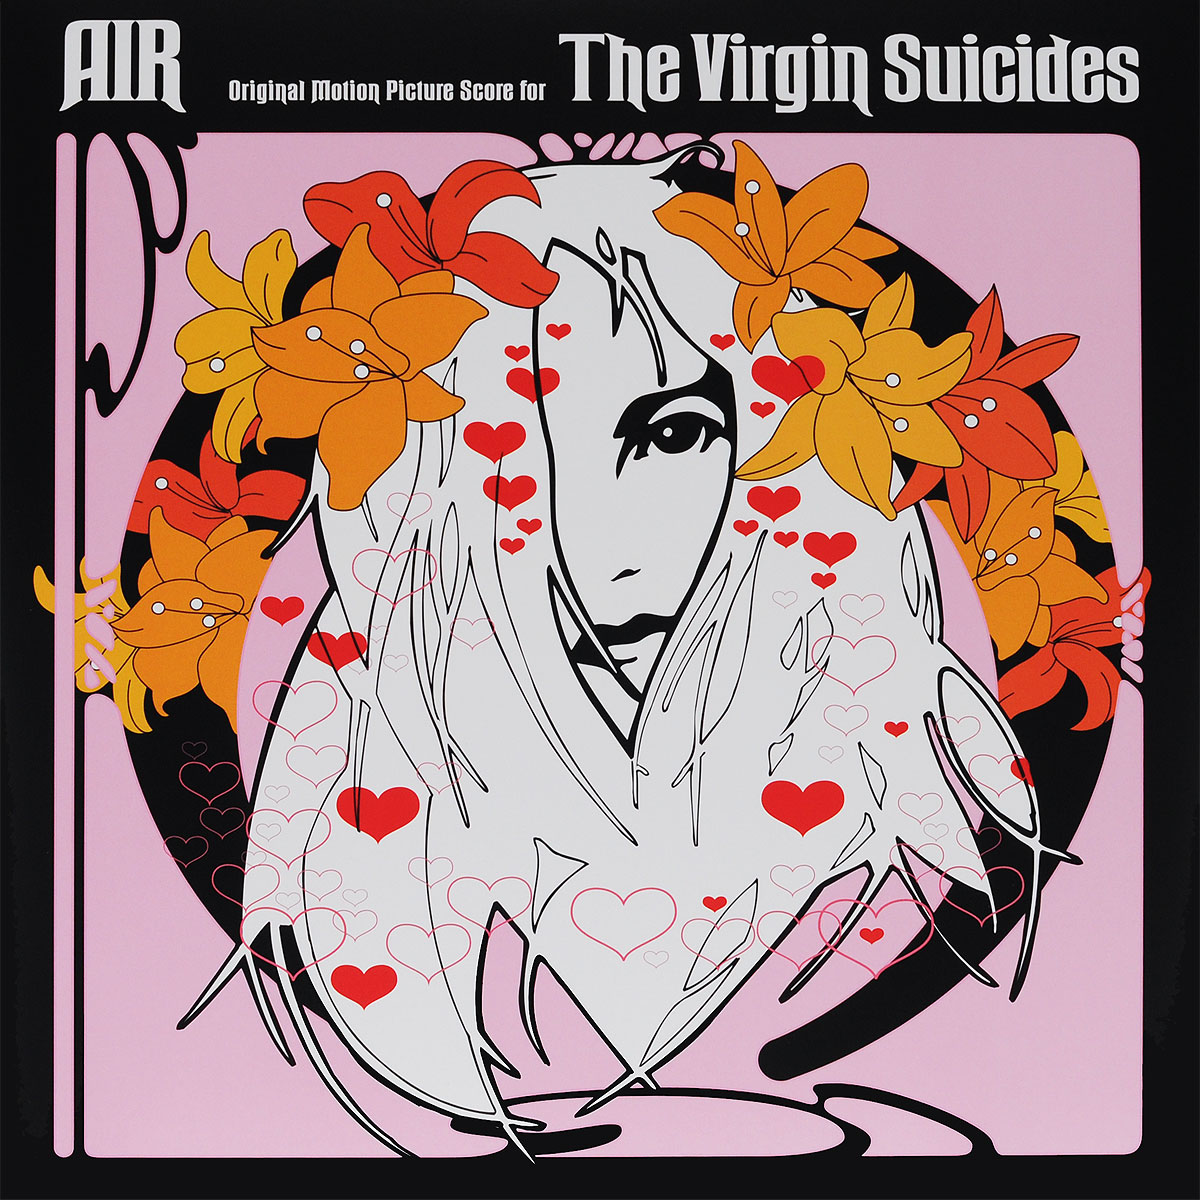 Air Air. The Virgin Suicides. Original Motion Picture Score (LP) виниловая пластинка guano apes bel air 2 lp